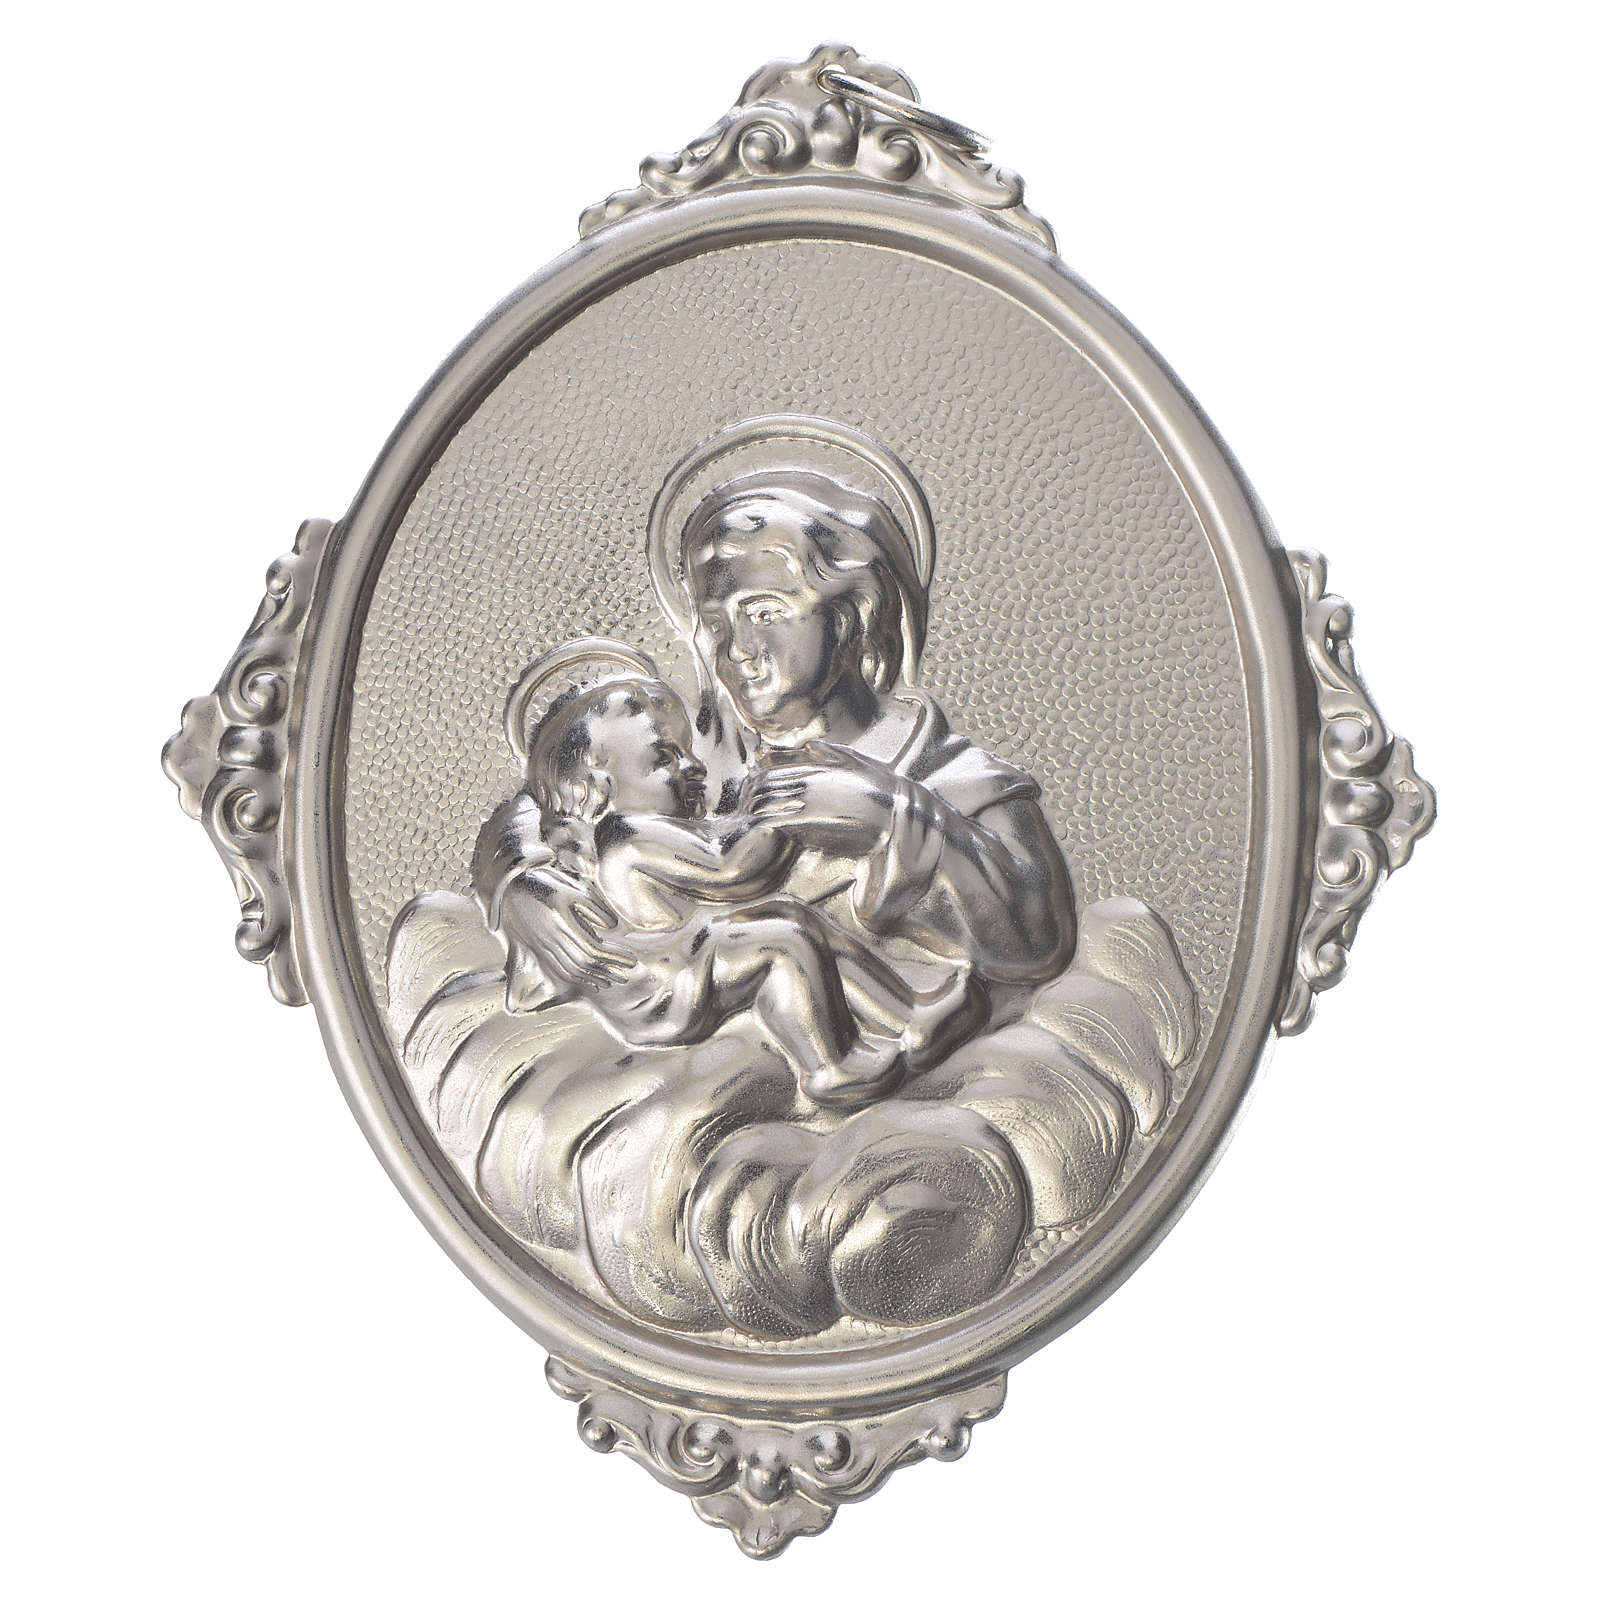 Confraternity Medal in brass, Our Lady of Graces 3